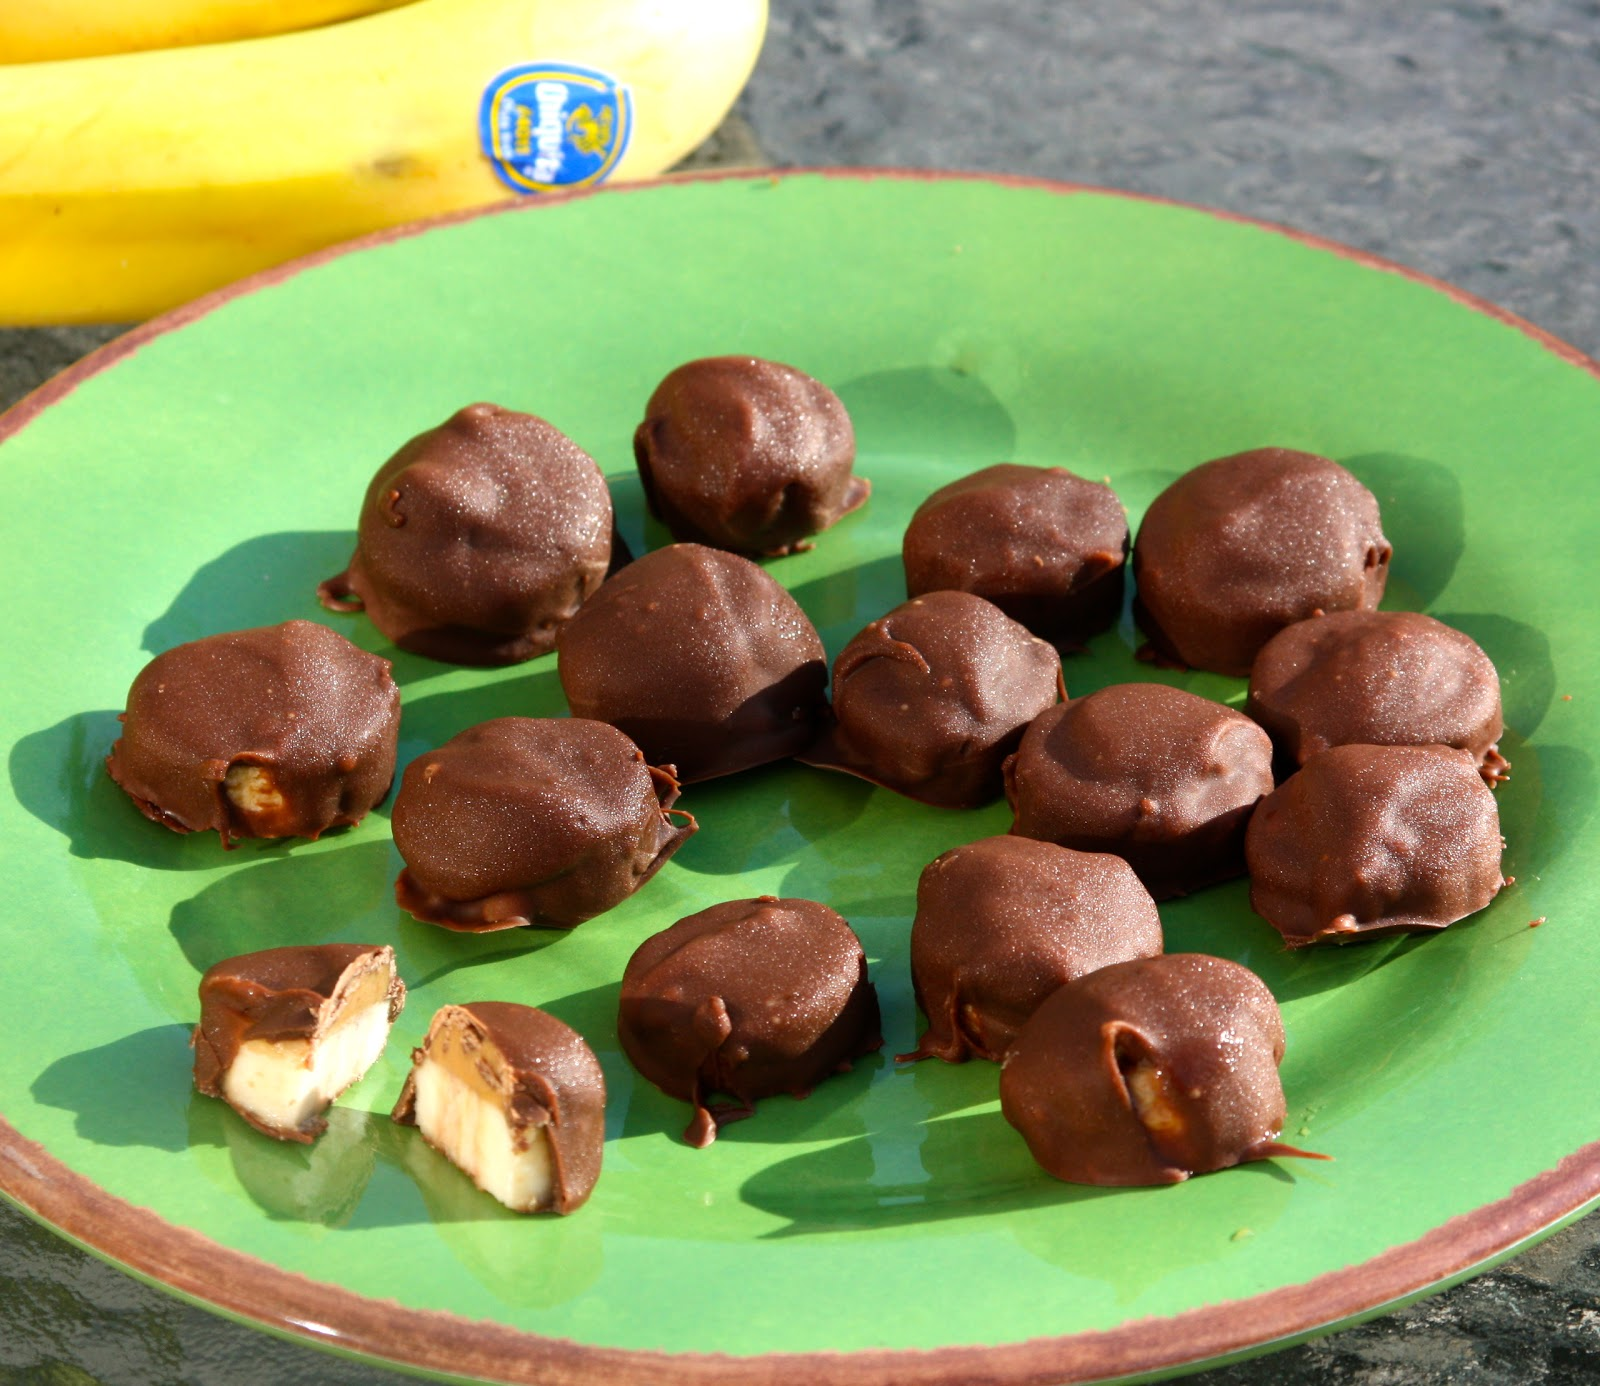 My Recipe Box: Chocolate Covered Banana Bites